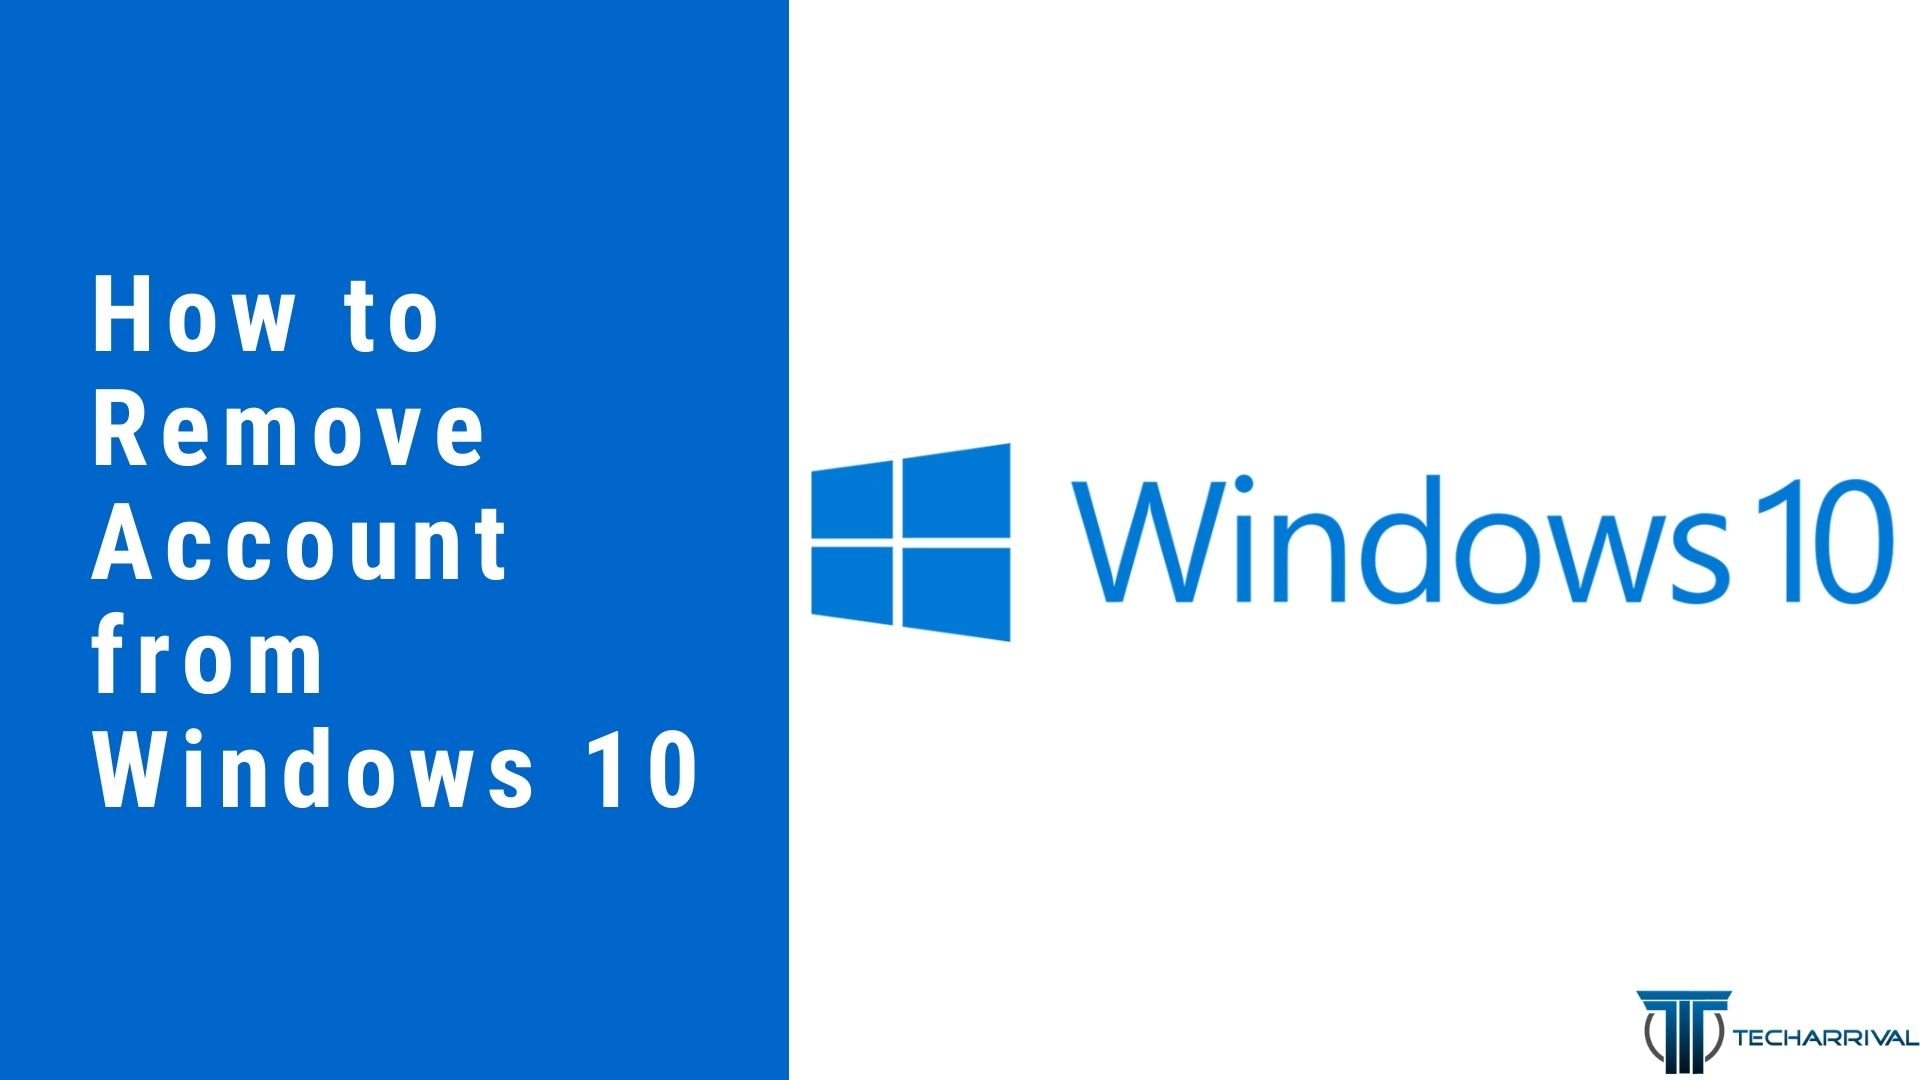 How To Remove Account From Windows 10